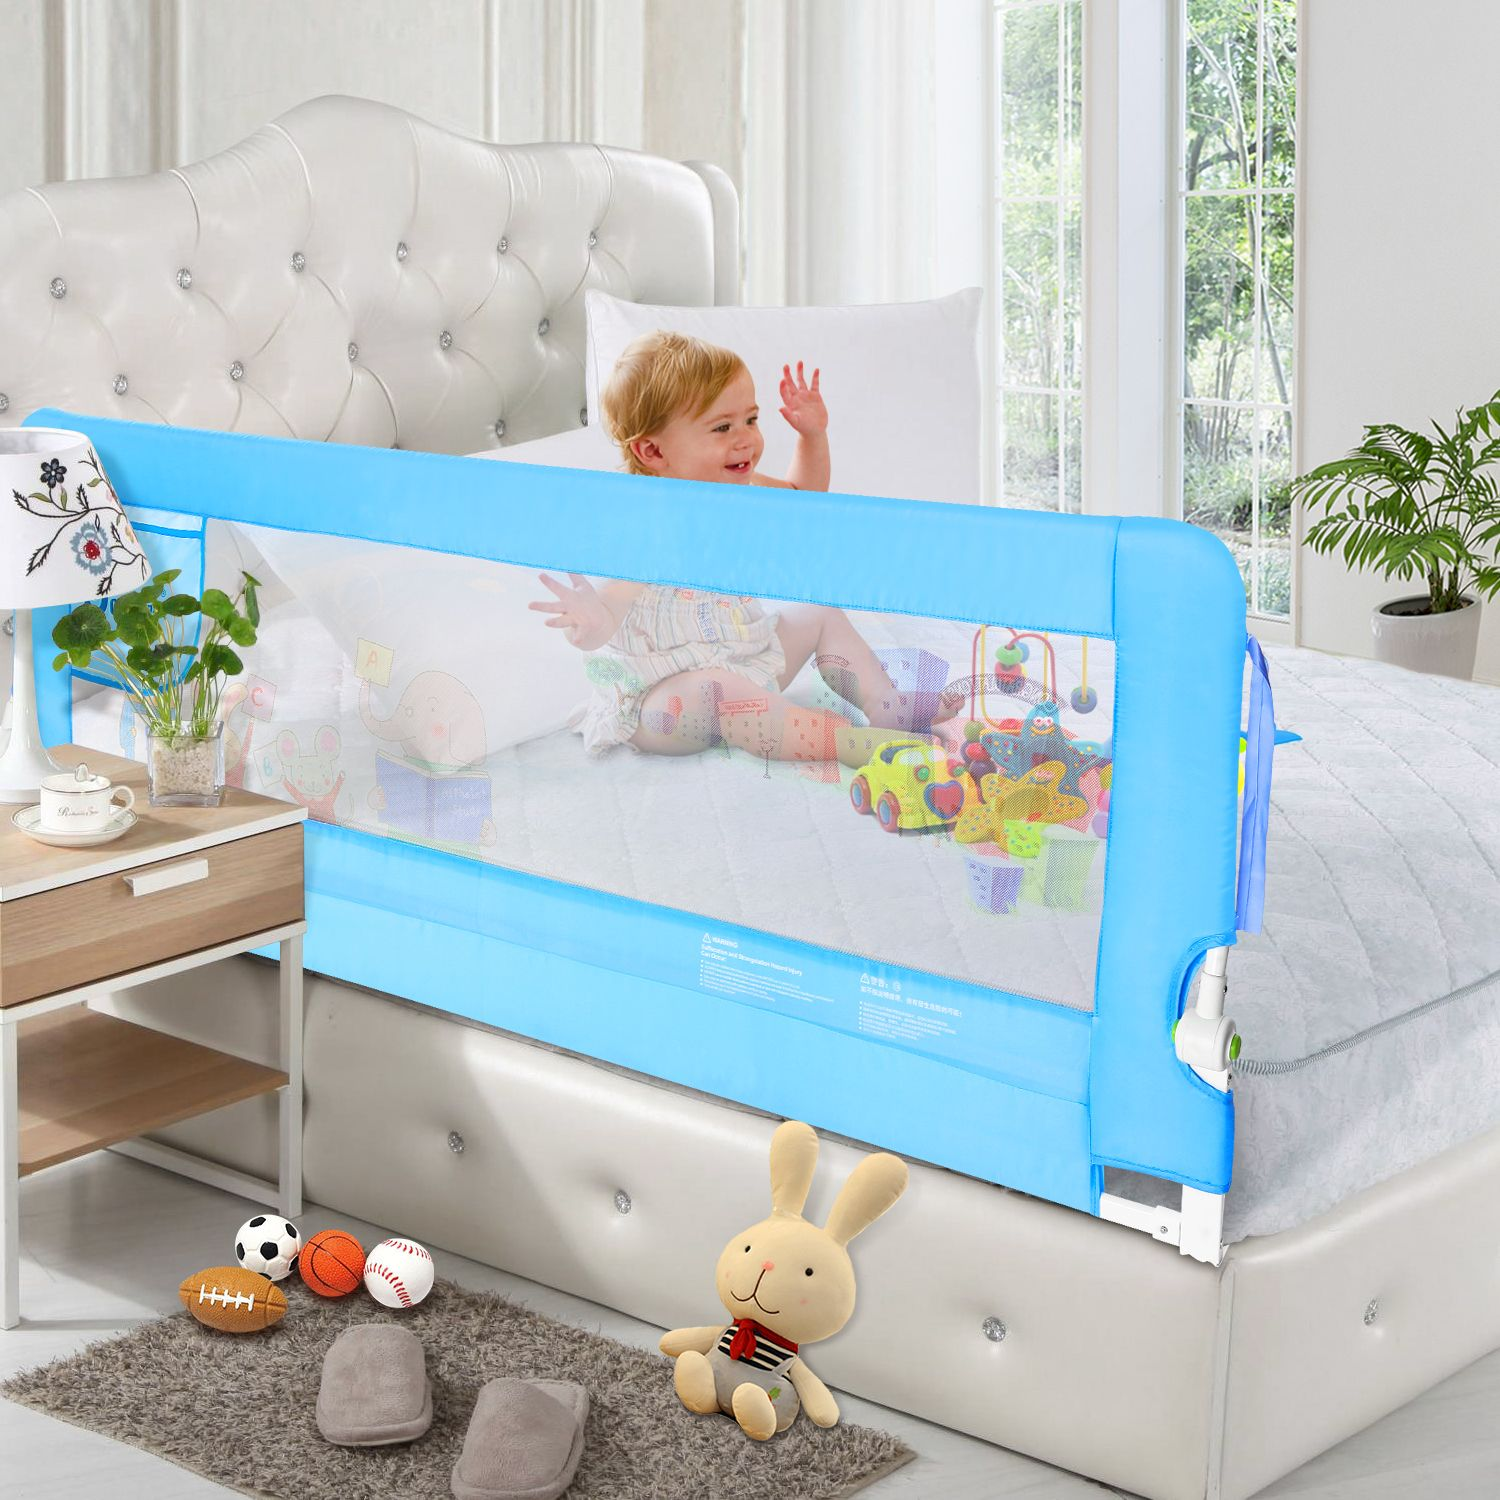 Baby Toddler bed frame, Safety bed, Bed rails for toddlers